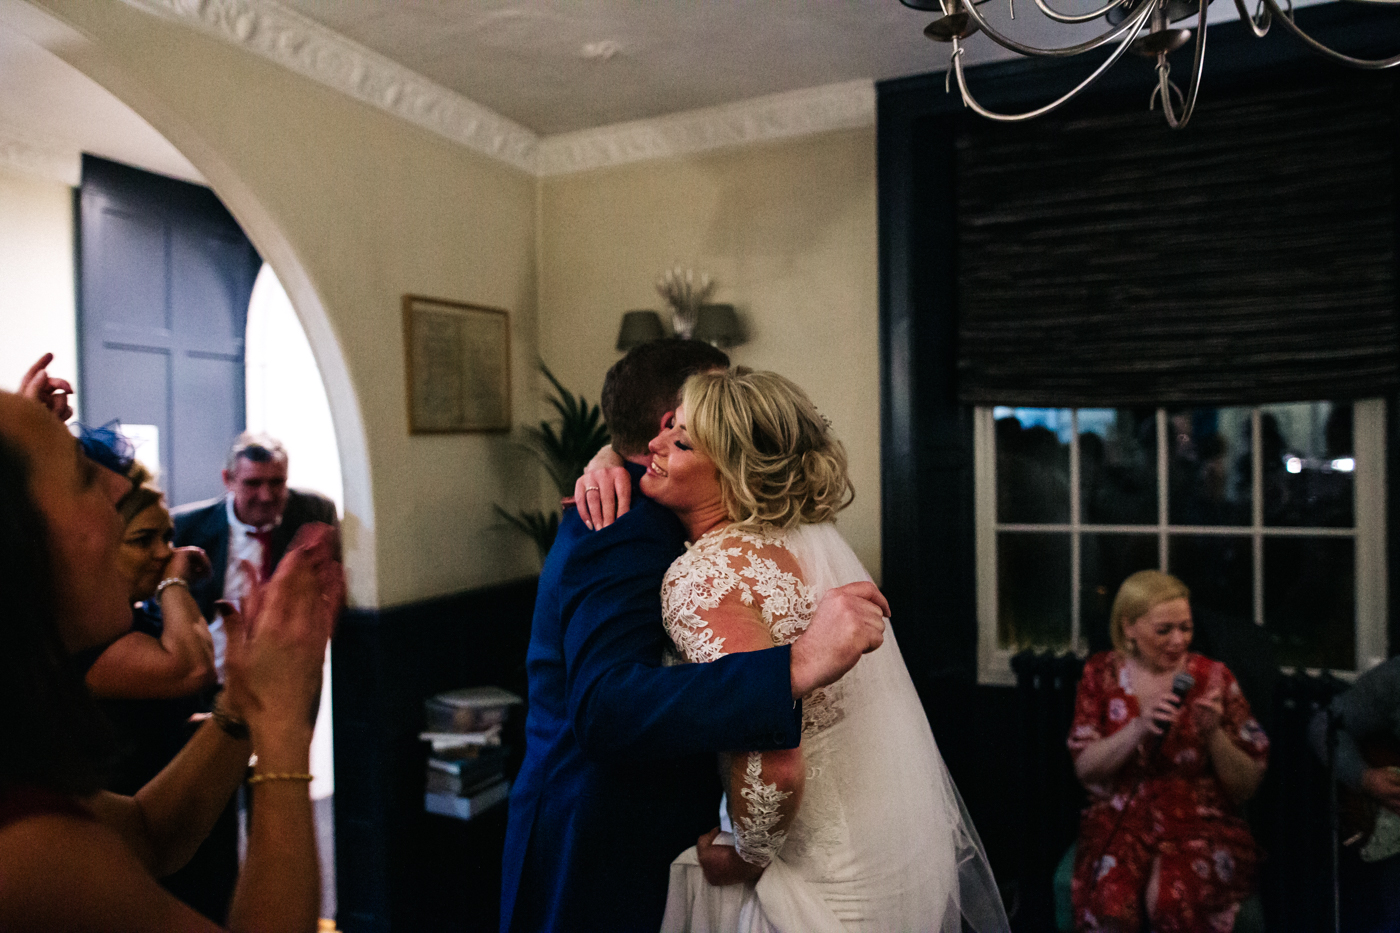 a bride and groom cuddle and dance. cleveland tontine wedding teesside north yorkshire - relaxed and creative wedding photographer